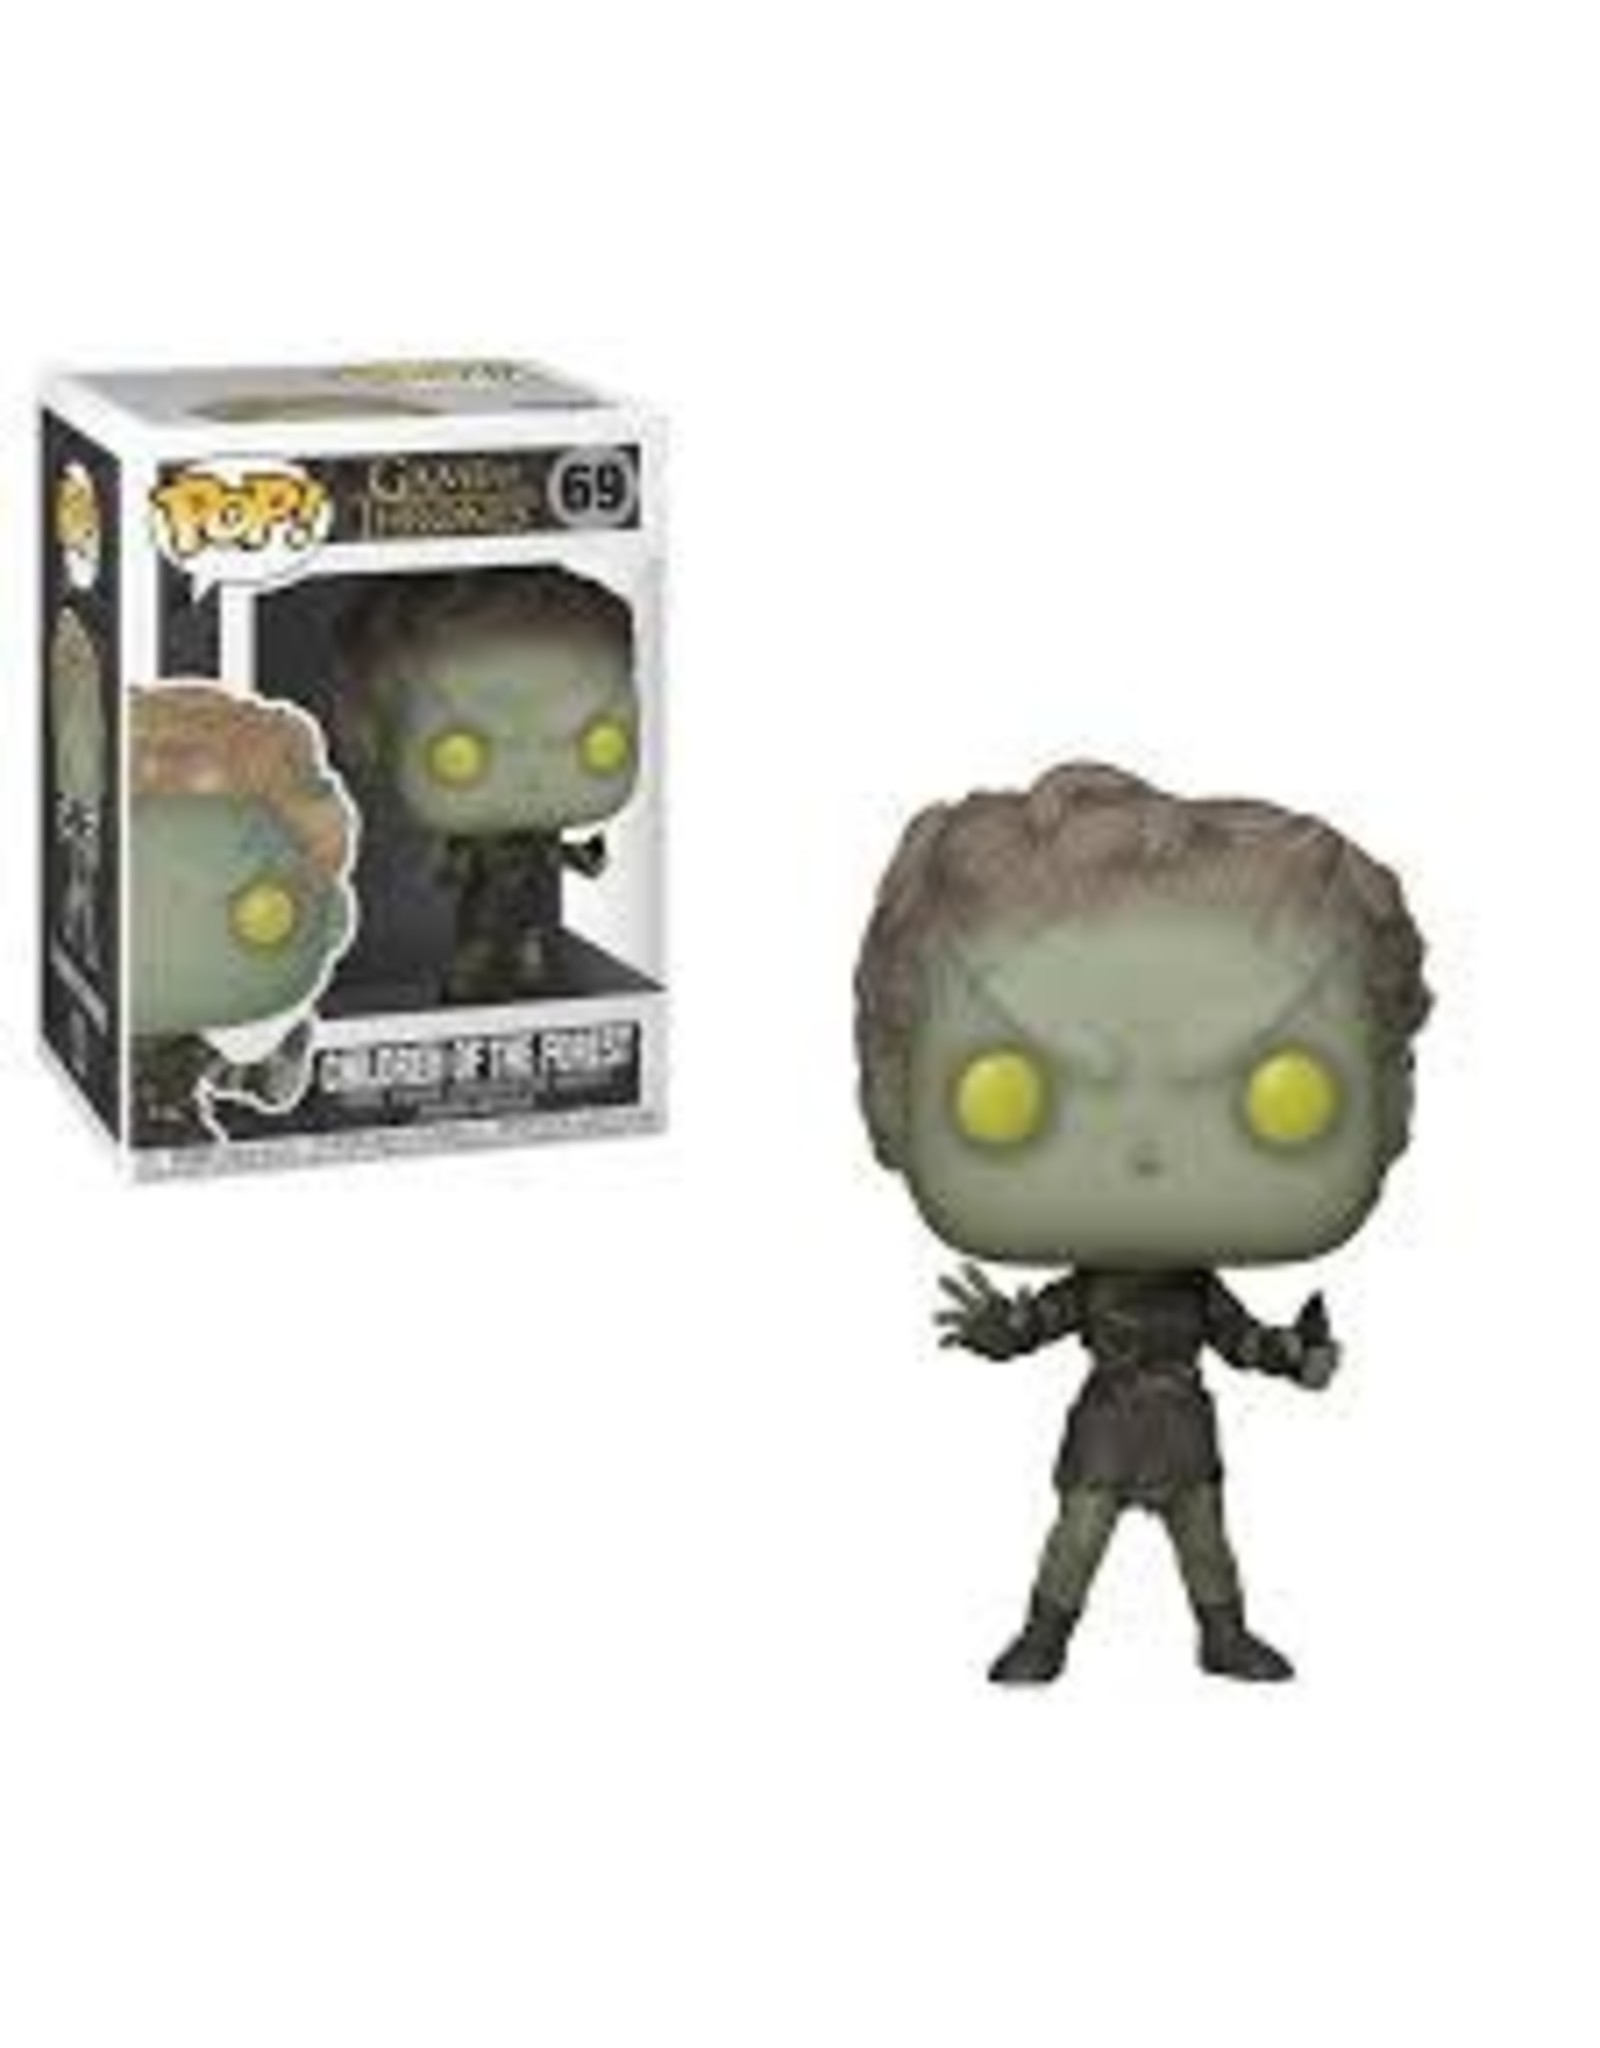 FUNKO POP GAME OF THRONES CHILDREN OF THE FOREST VINYL FIG